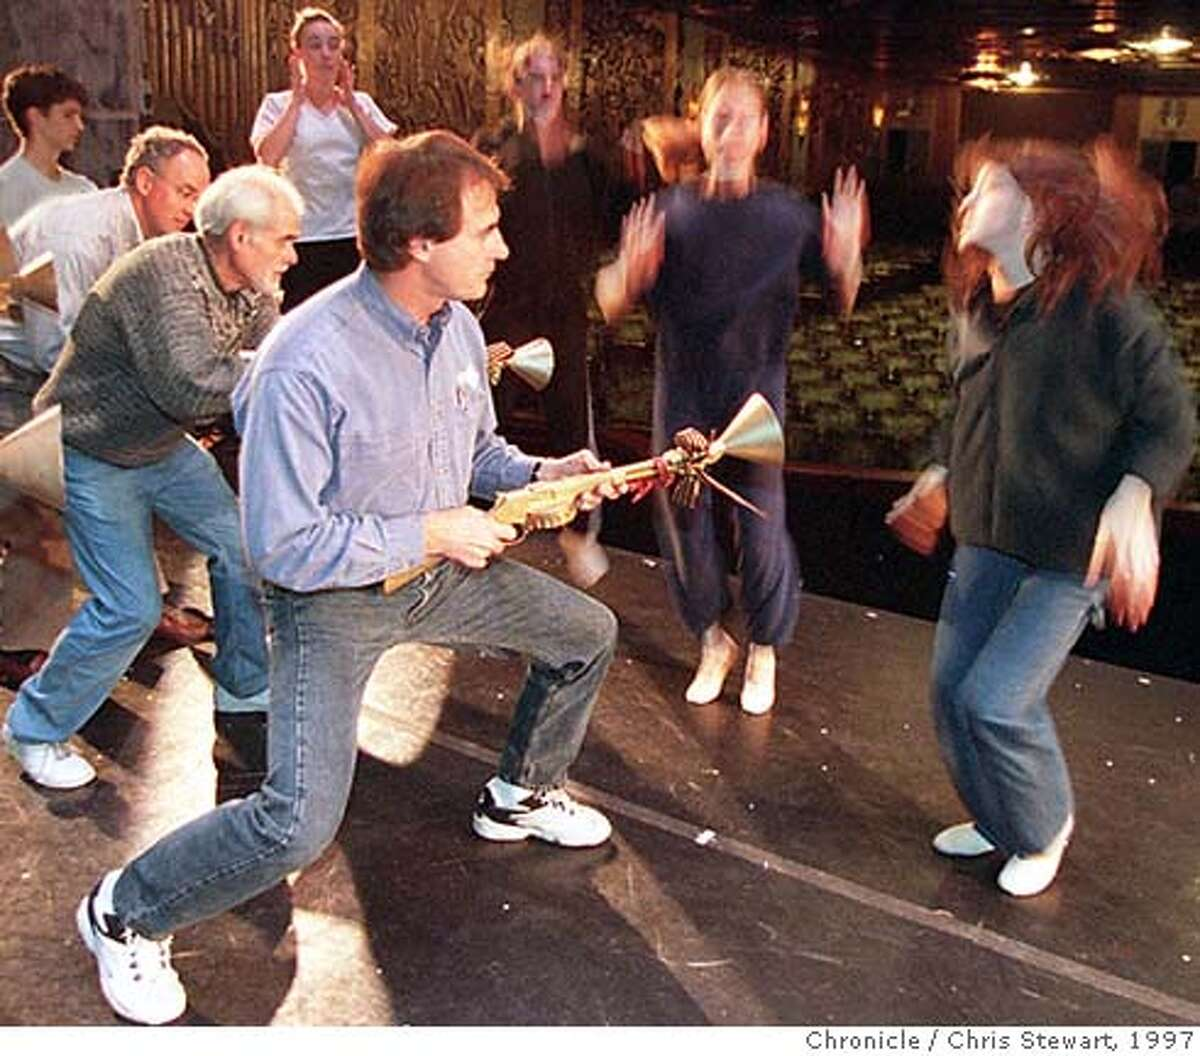 St. Louis Cardinals coach Tony La Russa (C), Oakland A's broadcaster Bill King (left of La Russa) and A's president San Alderson (L) joined other celebrities to perform in the 1997 All-Star Night at The Nutcracker with the Oakland Ballet. Here they rehearse as tin soldiers firing upon mice soldiers for the December 19th performance. SAN FRANCISCO CHRONICLE PHOTO BY CHRIS STEWART